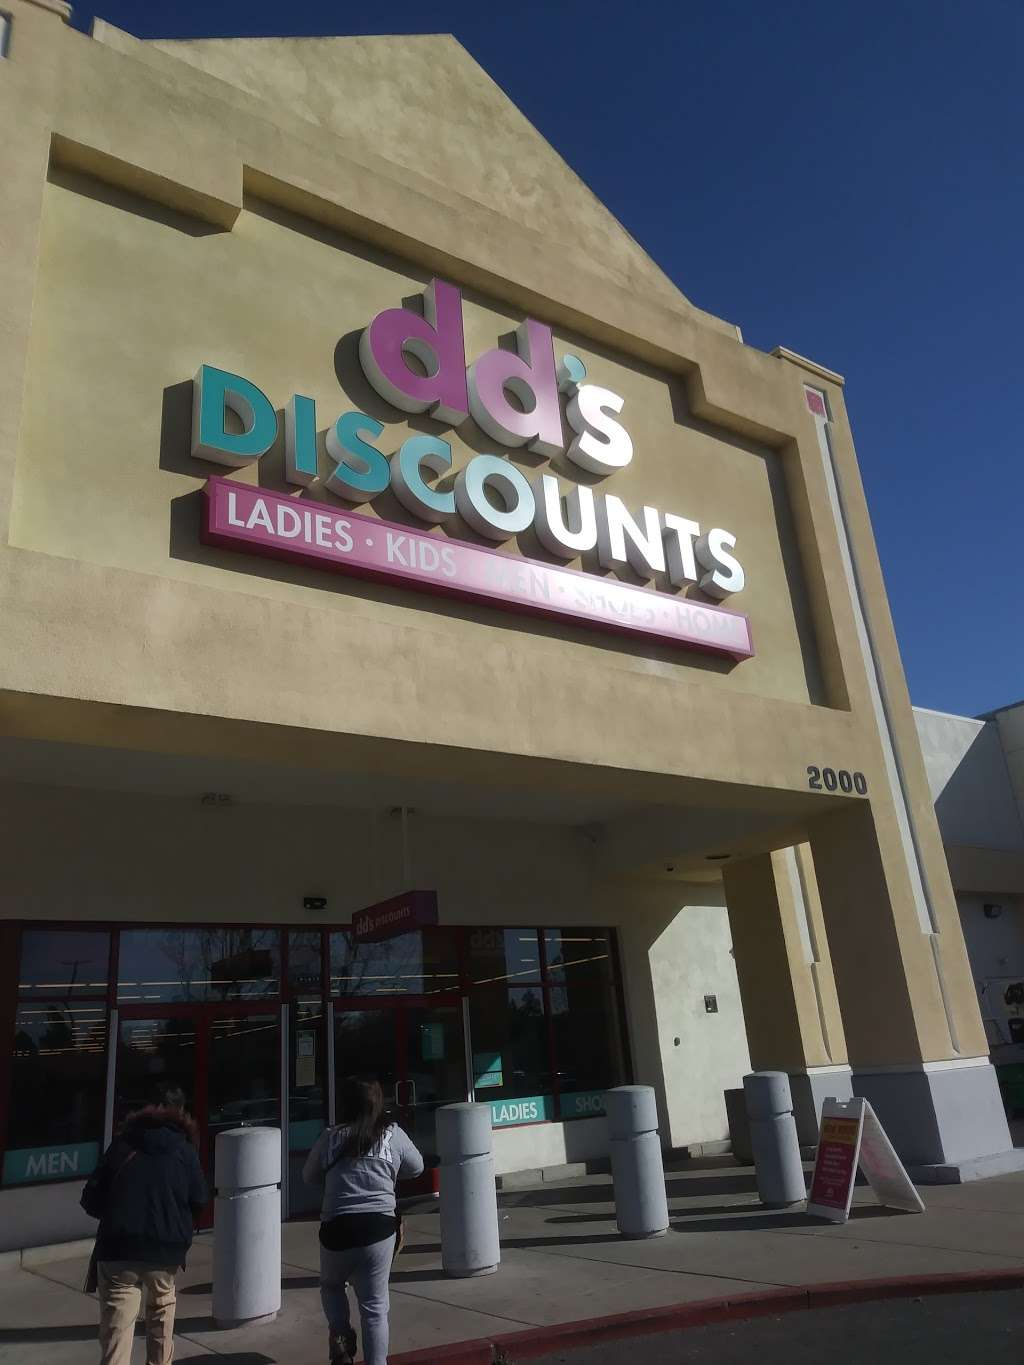 dds DISCOUNTS - clothing store  | Photo 5 of 10 | Address: 2000 N Park Blvd, Pittsburg, CA 94565, USA | Phone: (925) 432-3950